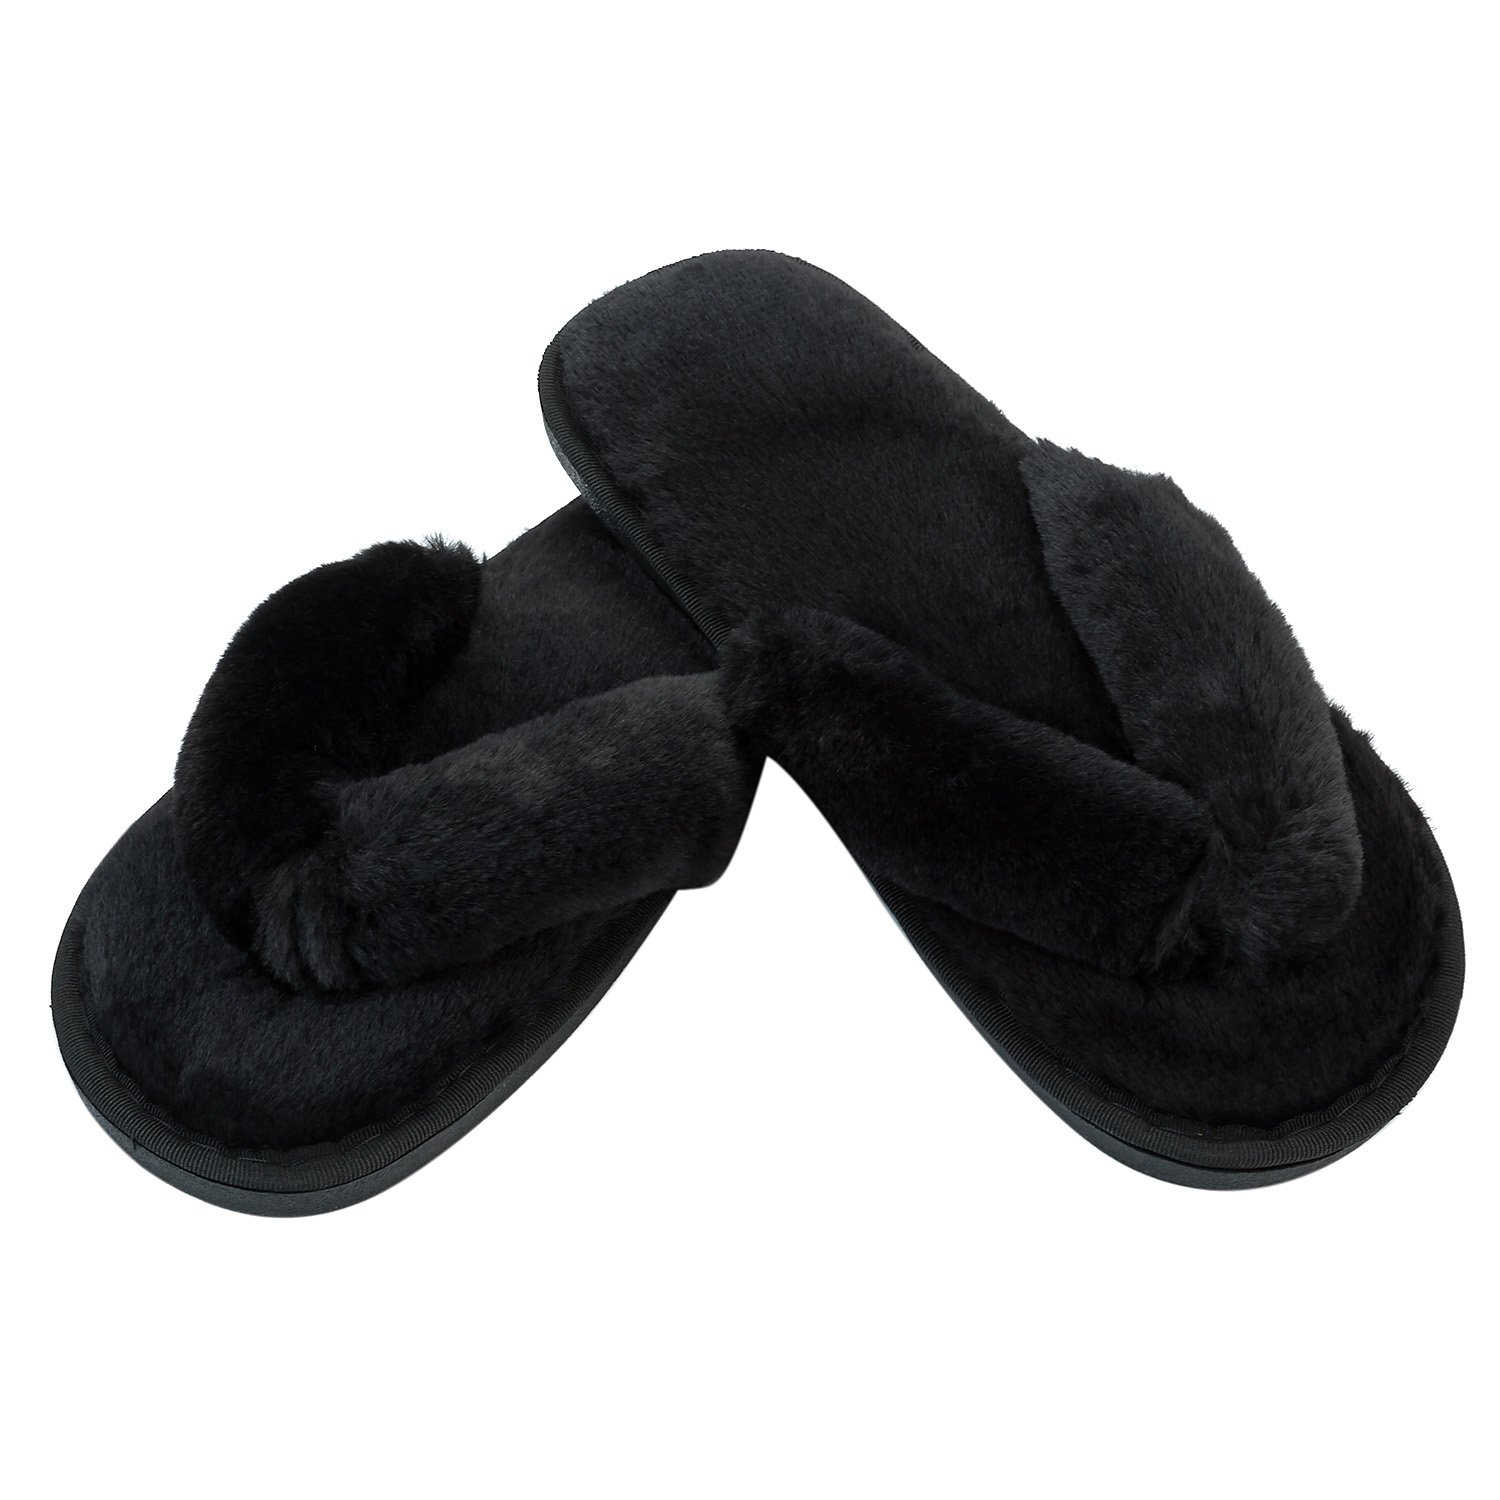 Joinfree Women S Bedroom Slippers Comfort Four Season Classy Indoor Spa Slide Shoes Buy Online In Burkina Faso Missing Category Value Products In Burkina Faso See Prices Reviews And Free